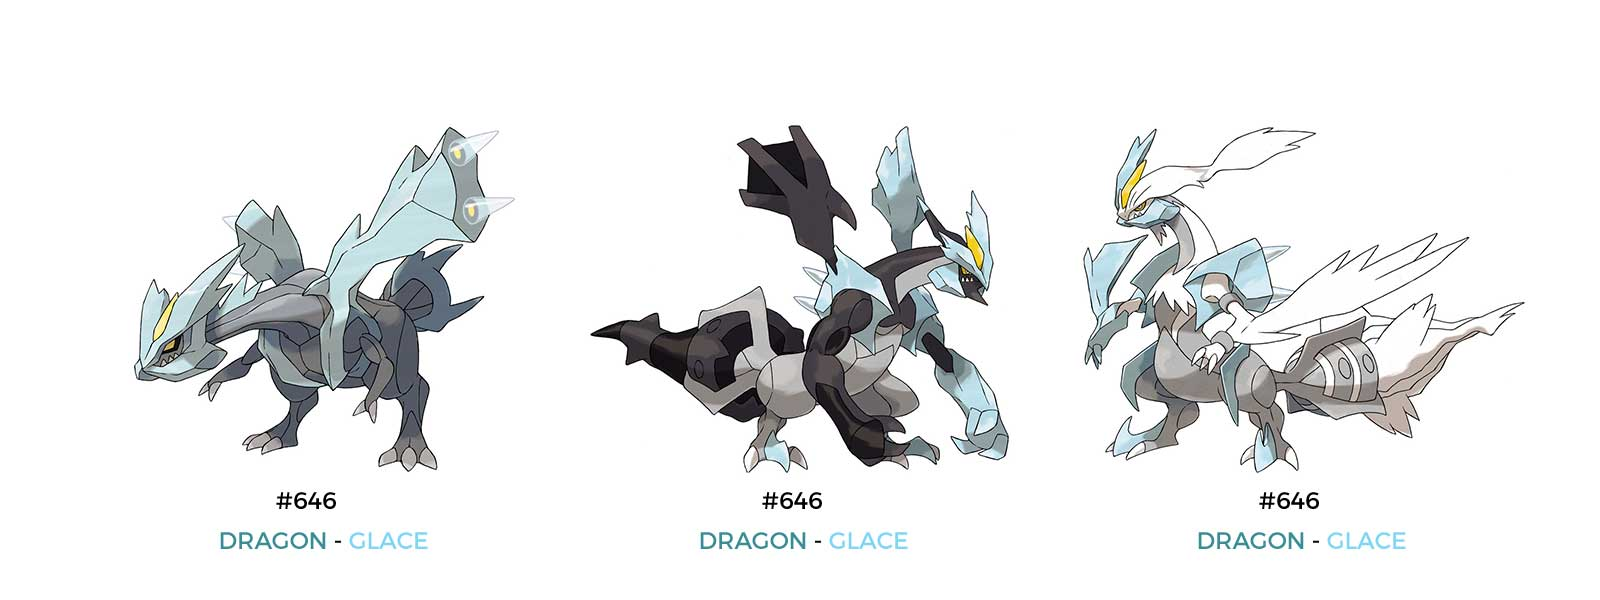 Kyurem type dragon